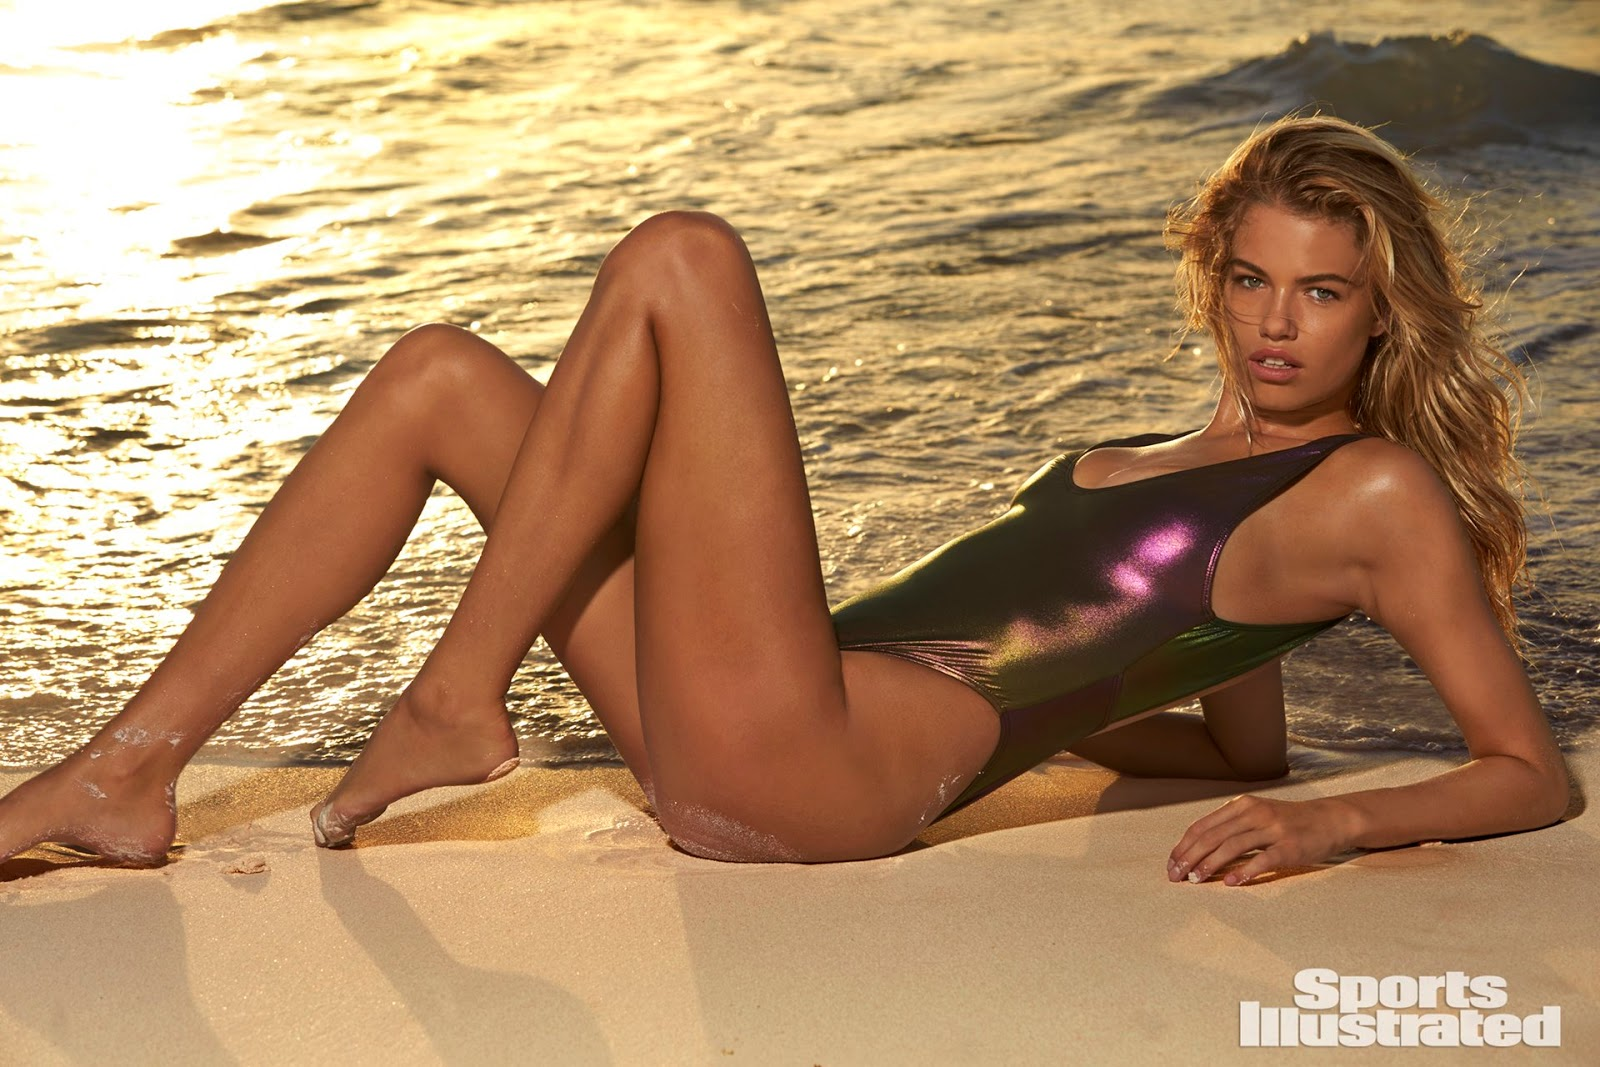 Hailey Clauson shows off curves for 2018 Sports Illustrated Swim